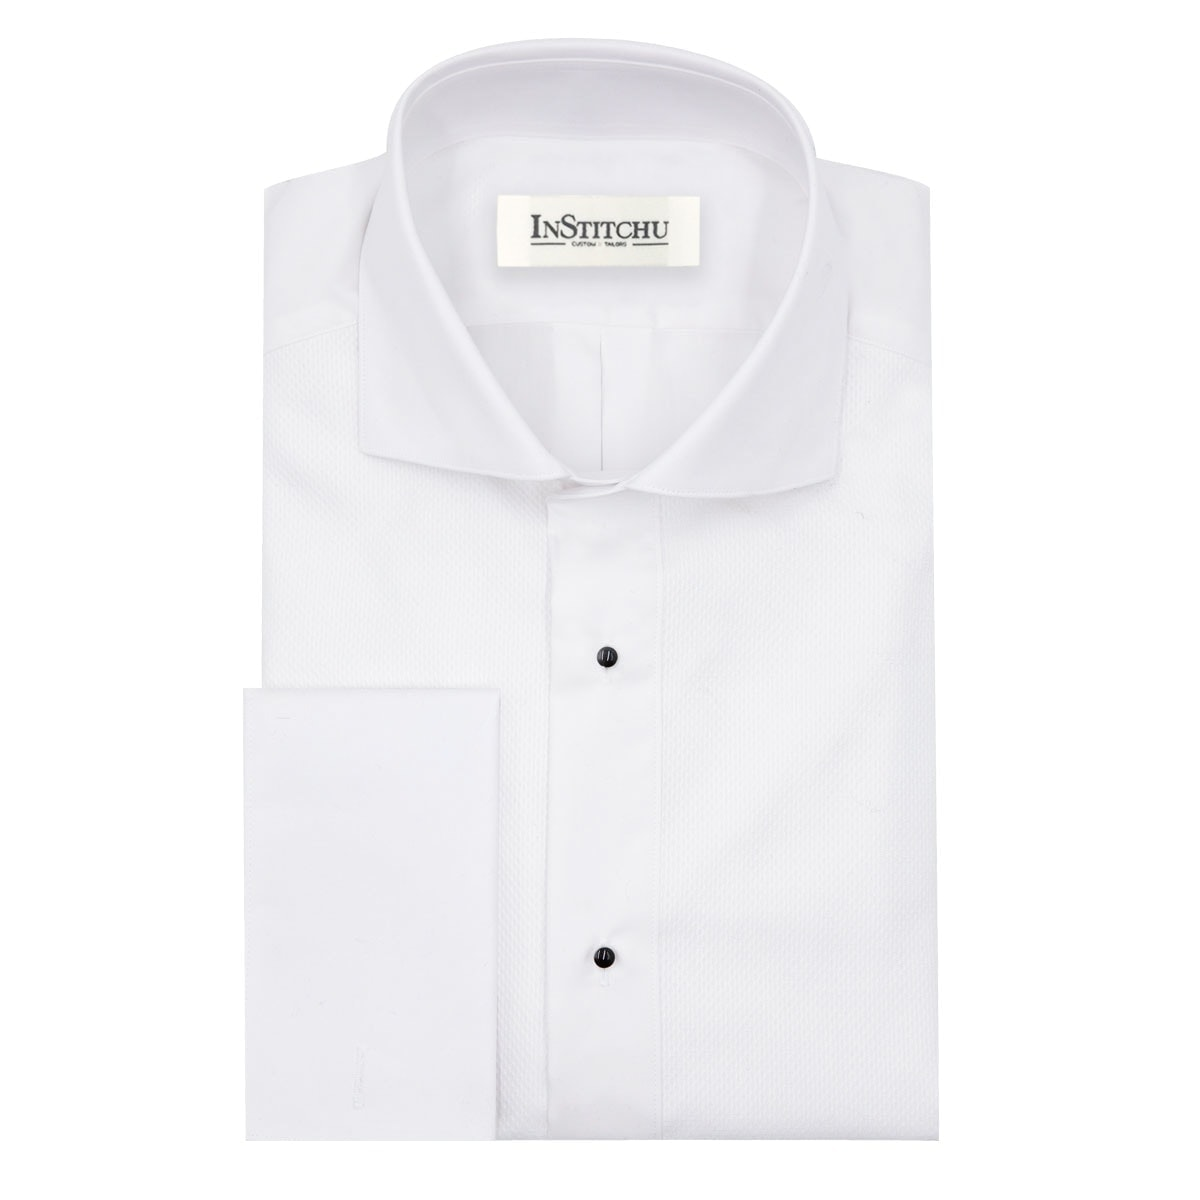 InStitchu Collection The Longworth White Shirt